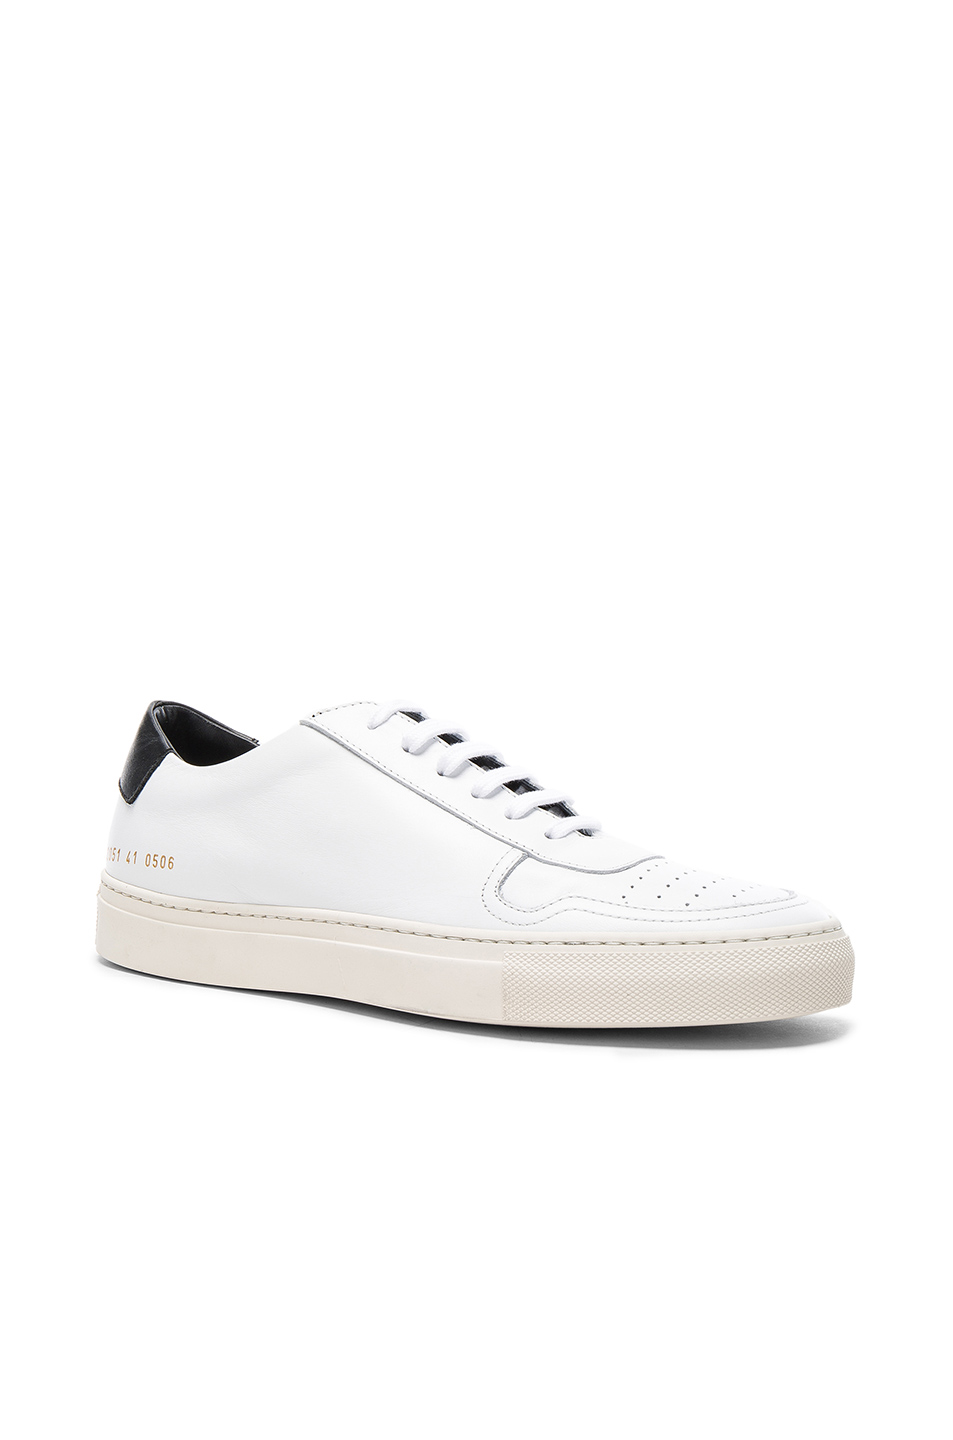 Common Projects Leather Bball Low Retro in White